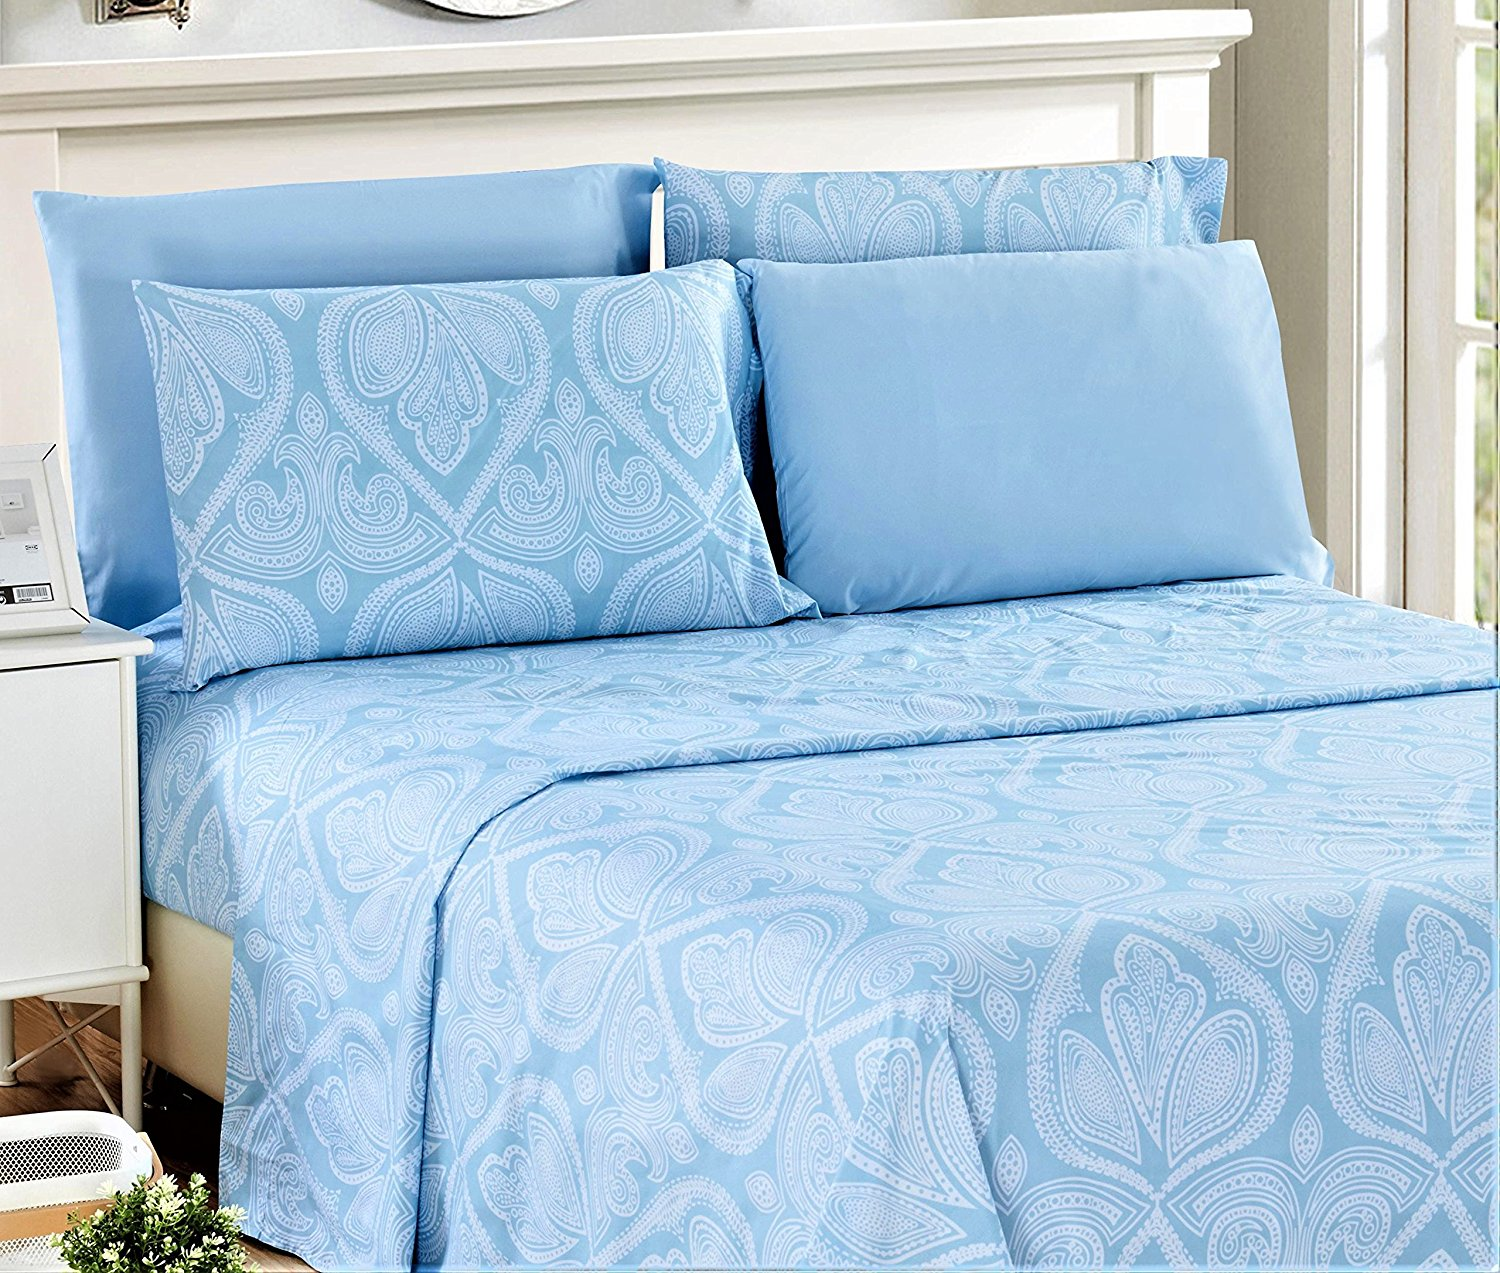 9c230e6ad0 Lux Decor Collection Egyptian Quality Paisley Printed Bed Sheet Set Blue  Queen (1 Fitted Bed Sheet, 1 Flat Sheet, 4 Pillow Covers) - 1800 Series  Deep Pocket ...